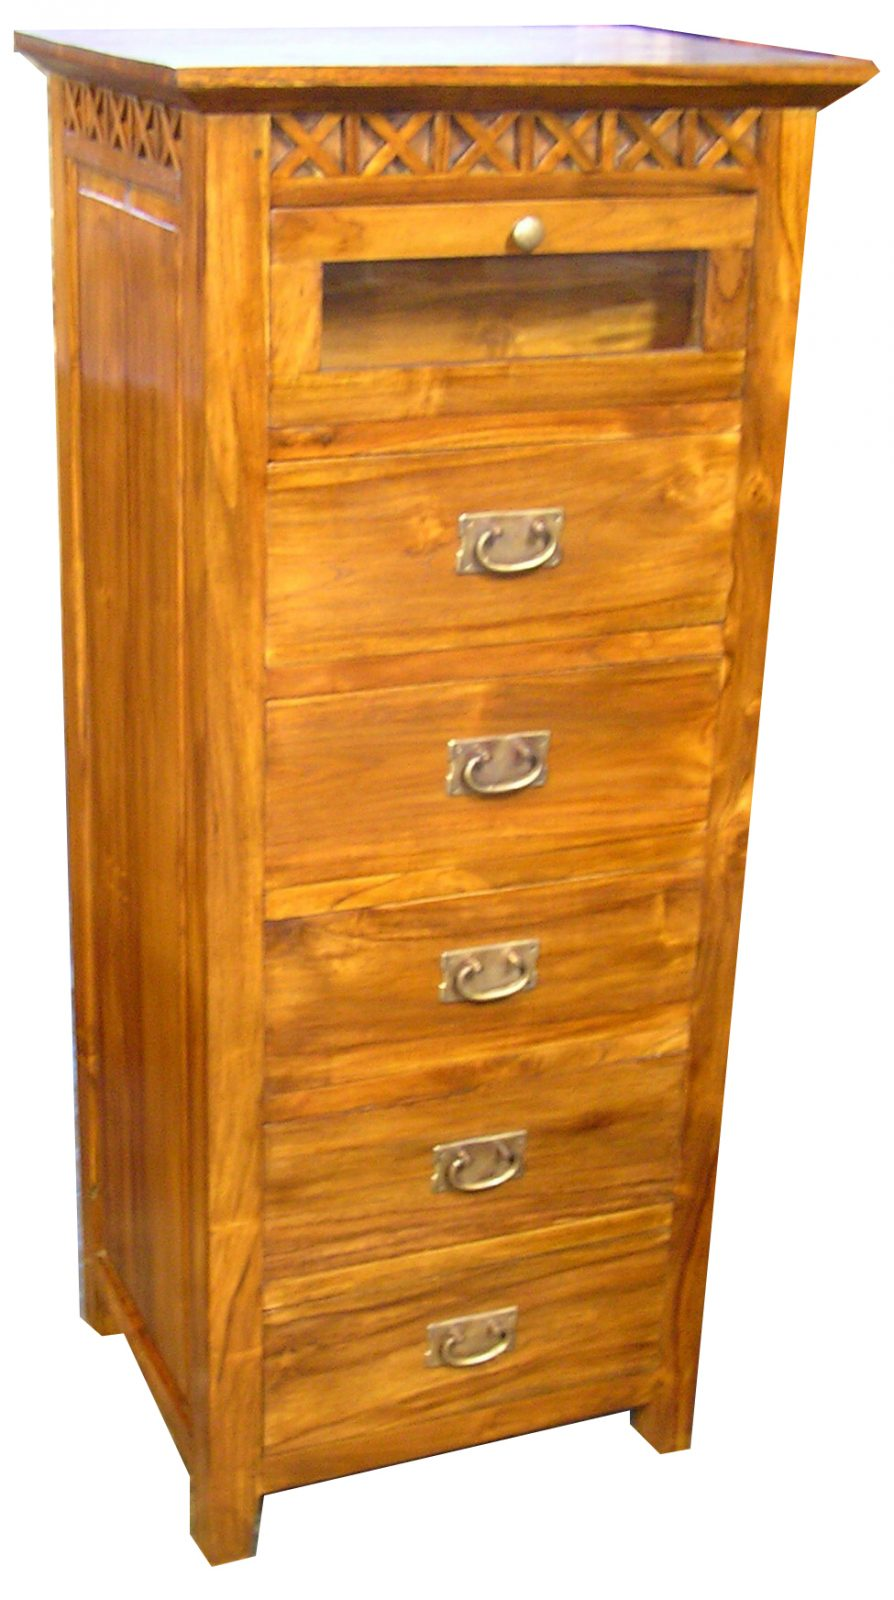 Jepara cabinet furniture indonesia cabinet for Furniture jepara